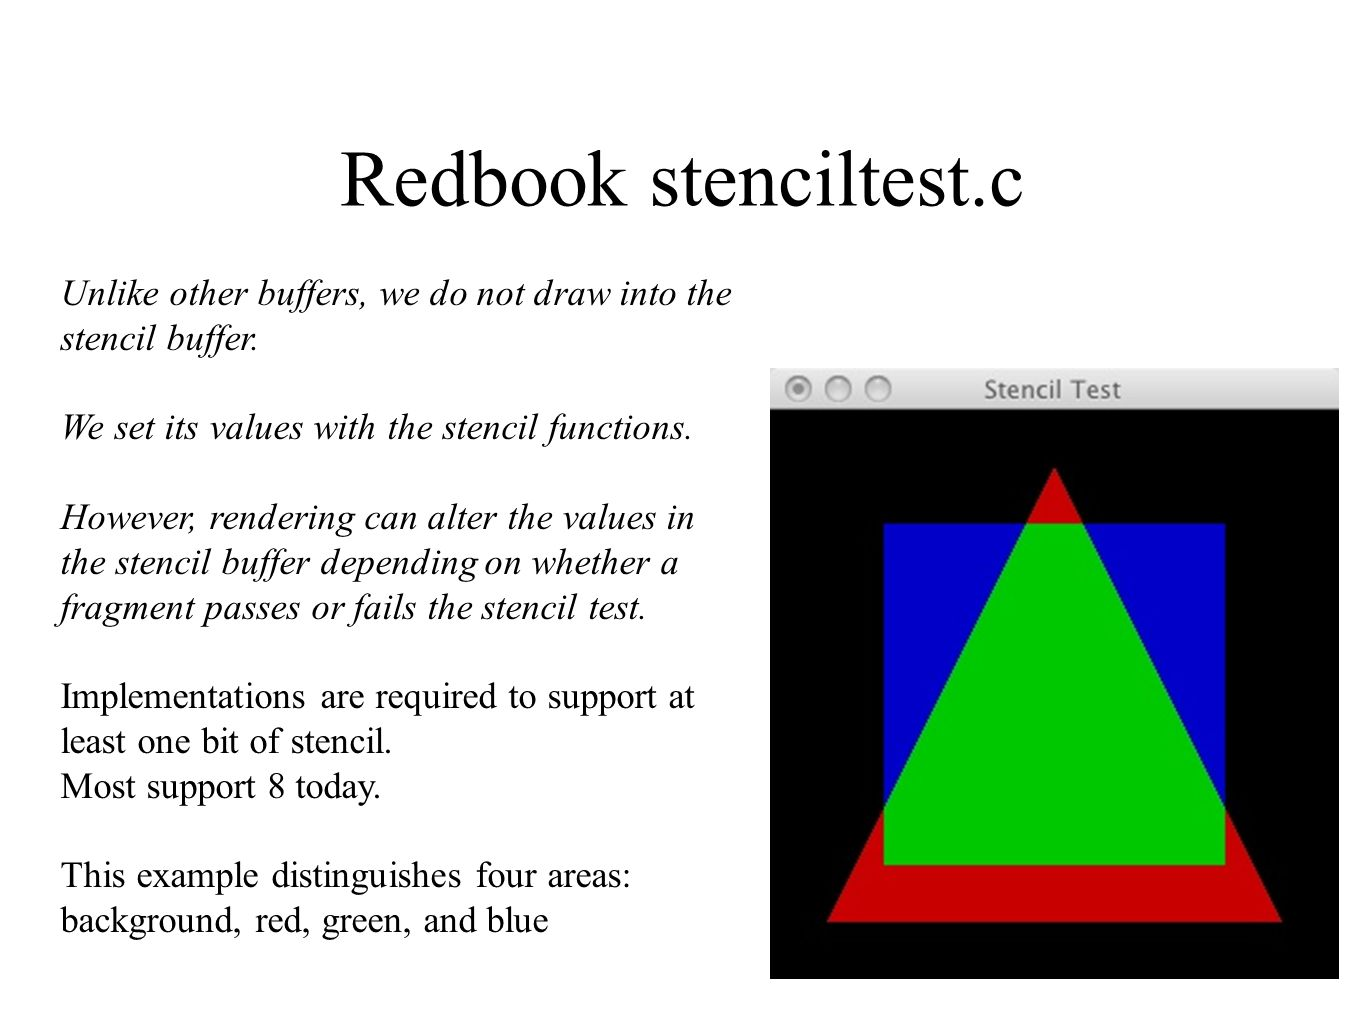 Redbook stenciltest.c Unlike other buffers, we do not draw into the stencil buffer. We set its values with the stencil functions.